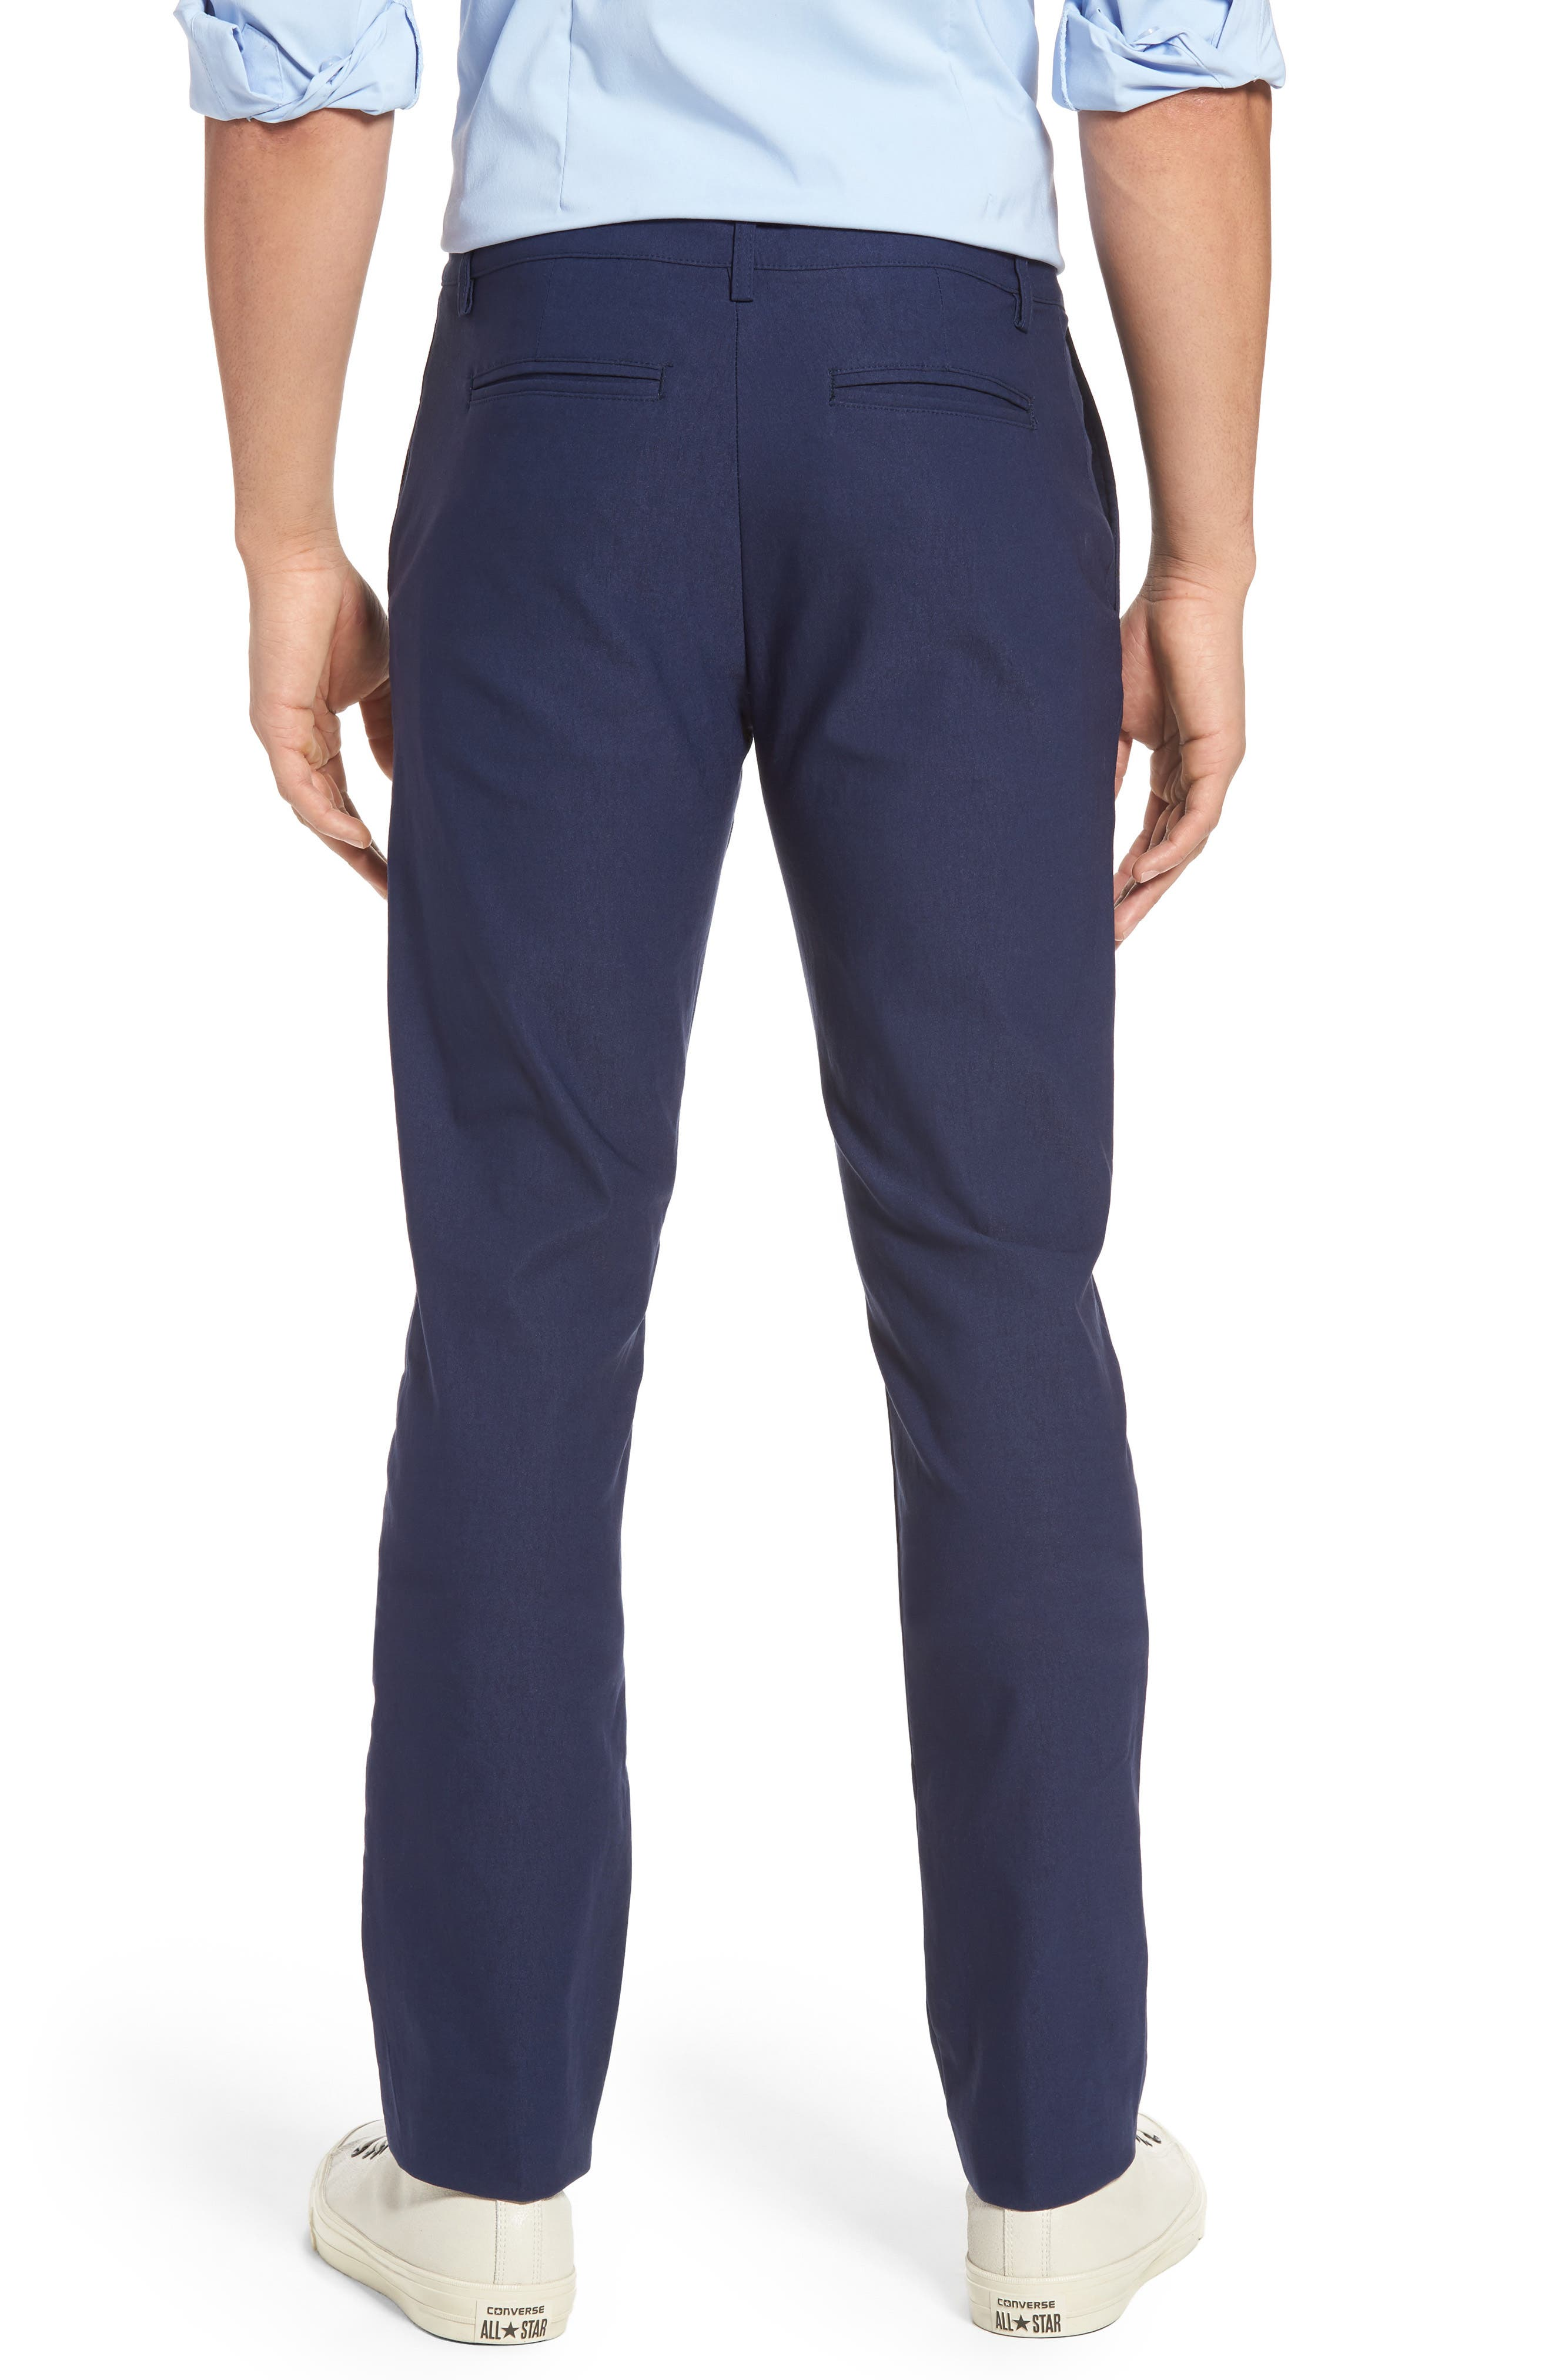 President Trim Fit Performance Chinos,                             Alternate thumbnail 2, color,                             Navy